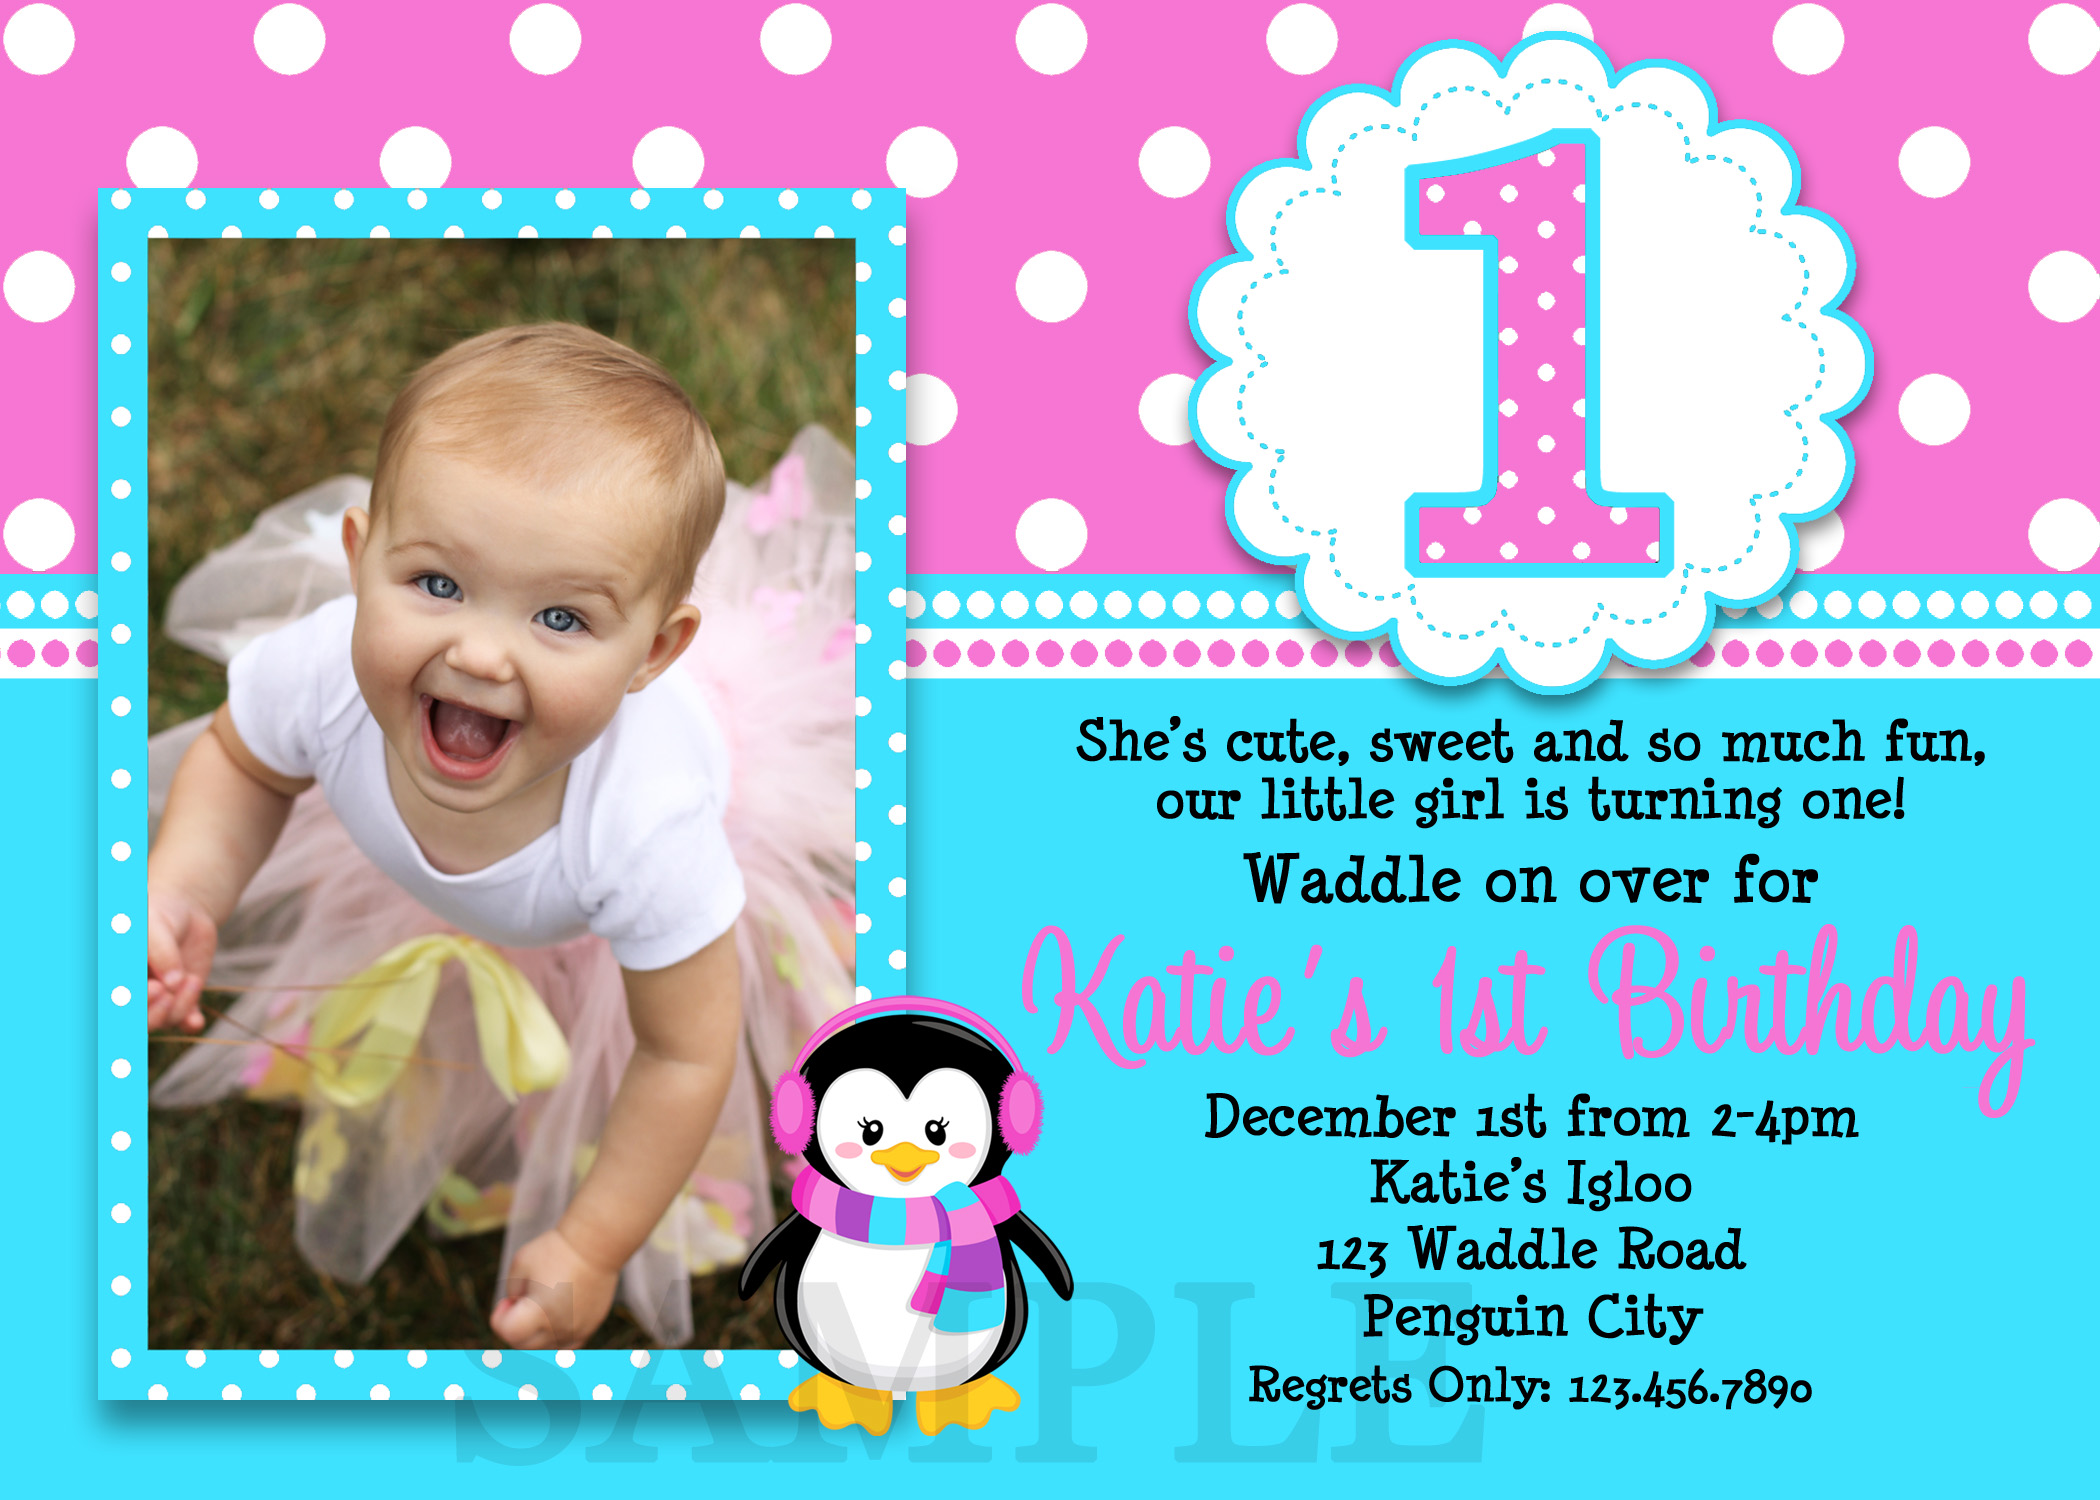 first birthday invitation card design ; Baby-First-Birthday-Invitation-Cards-to-get-ideas-how-to-make-your-own-birthday-Card-design-1